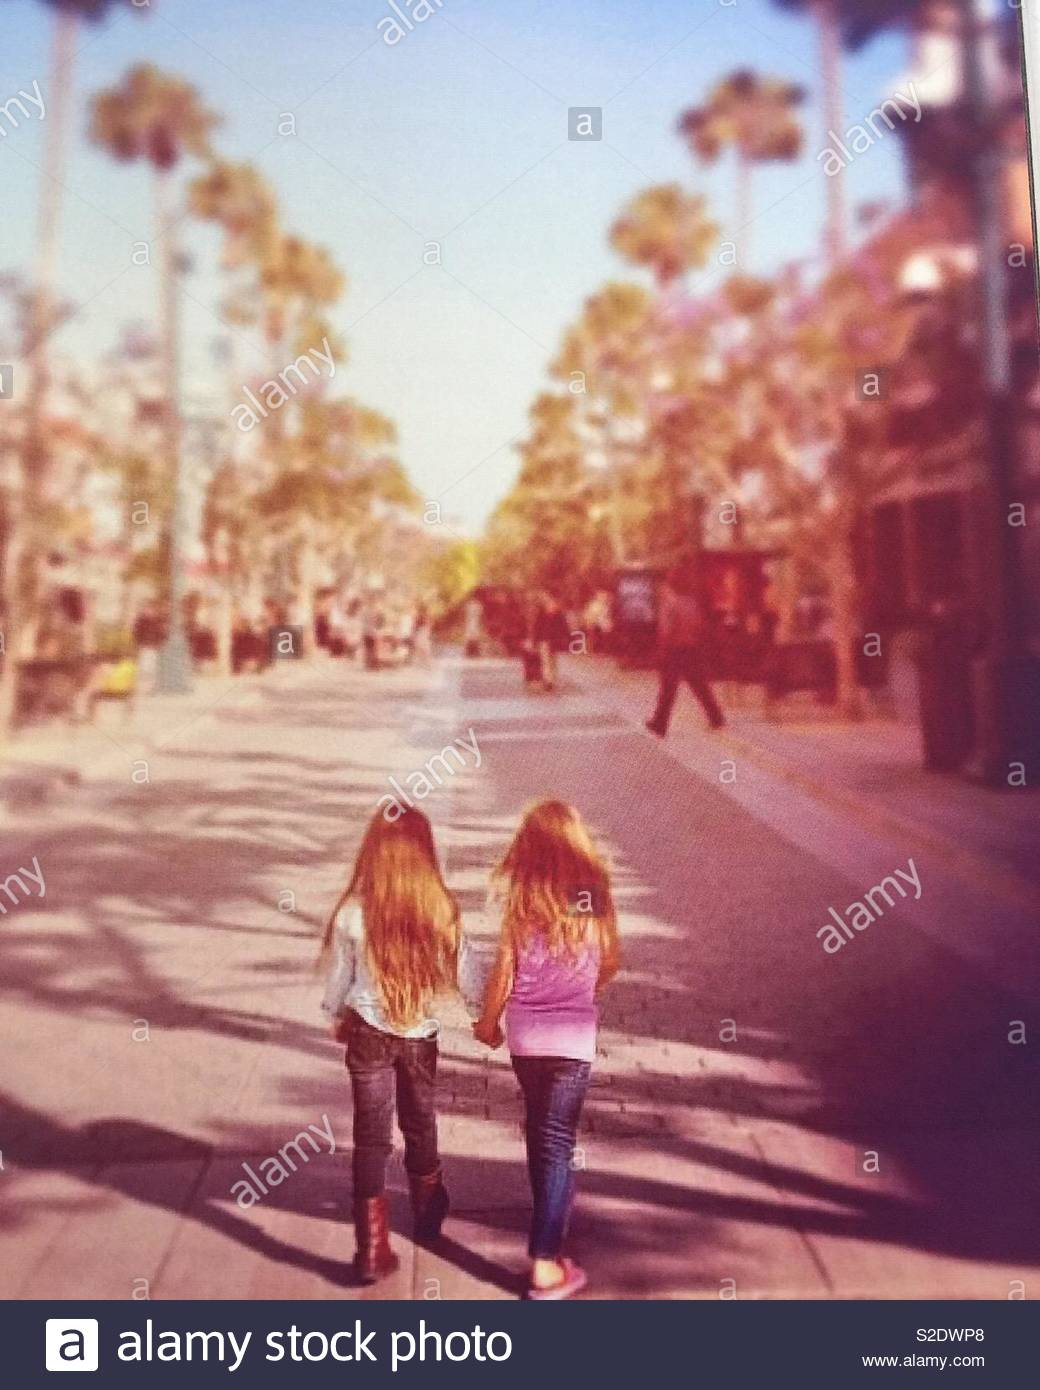 Two young girls walking away down a palm tree lined pathway in Santa Monica, California - Stock Image